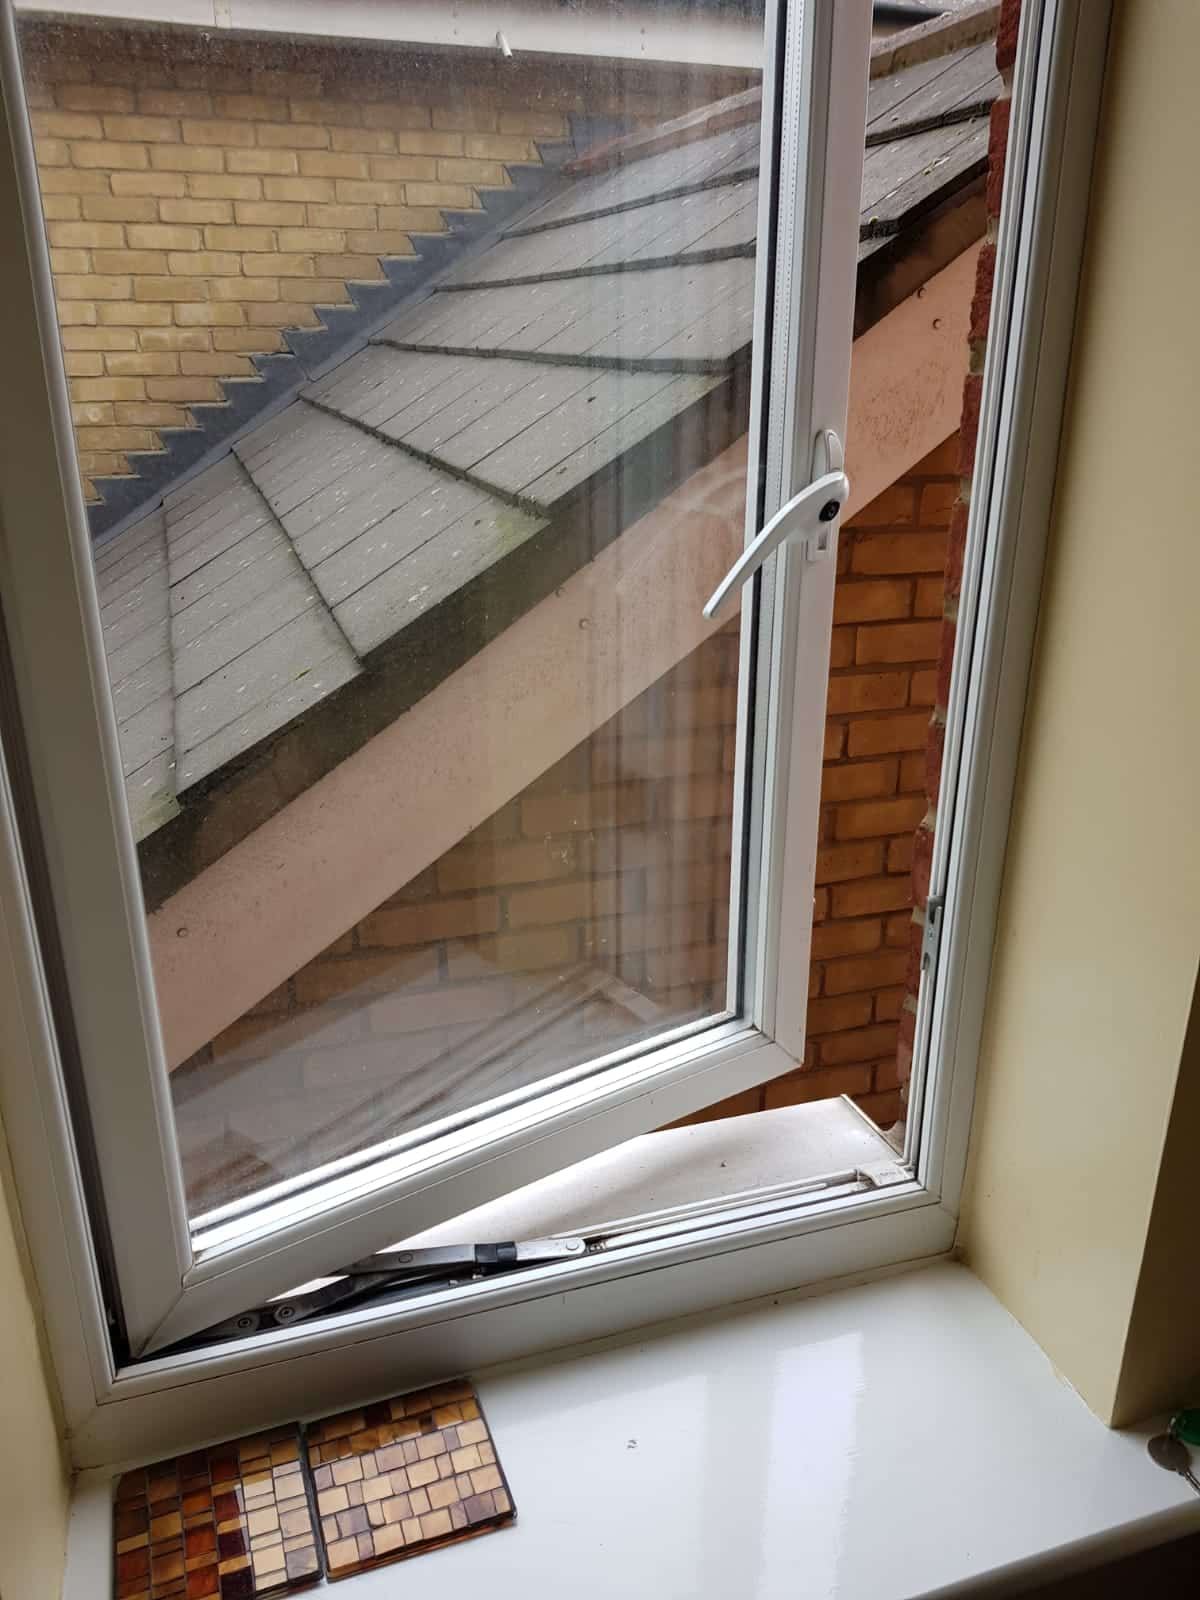 Child Safety Window Catch not fitted